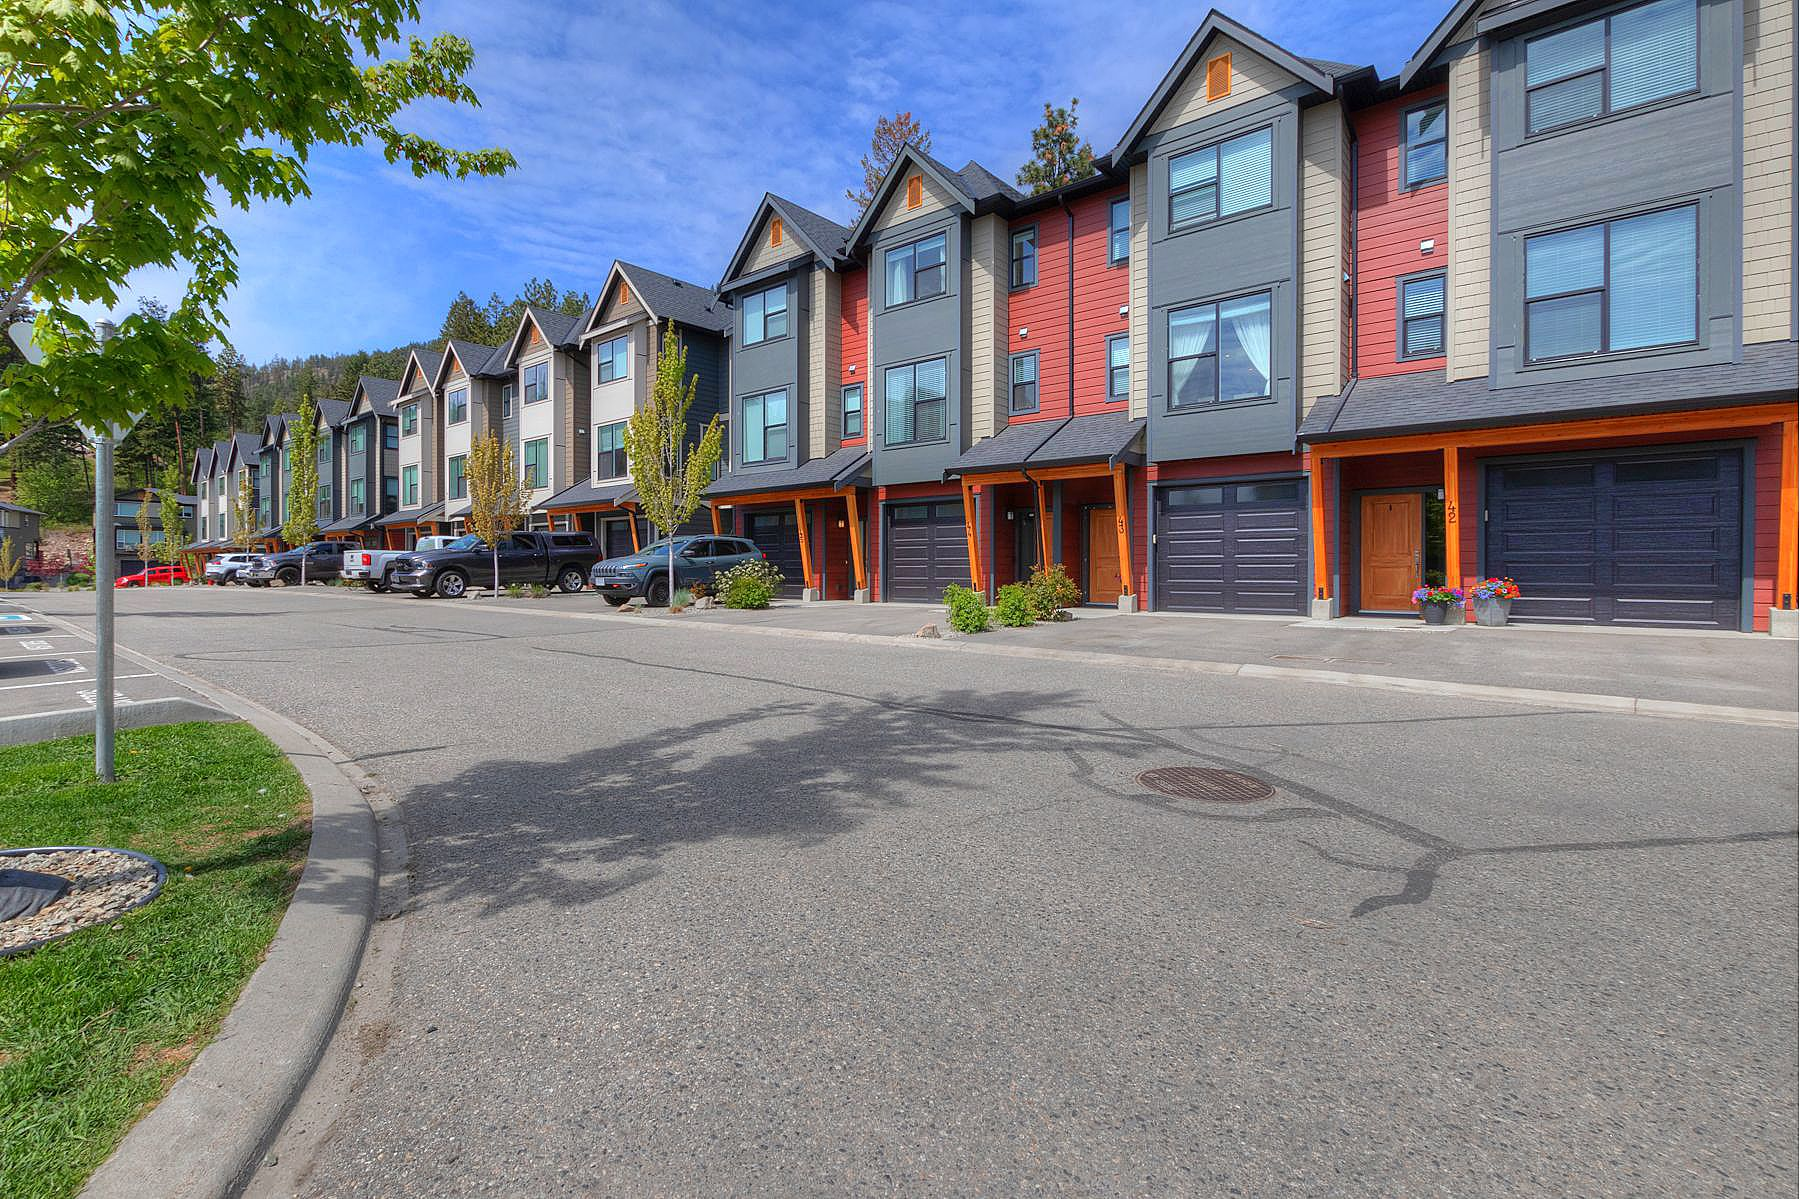 Main Photo: 44 2490 Tuscany Drive in West Kelowna: Shannon Lake House for sale (Central Okanagan)  : MLS®# 10231243